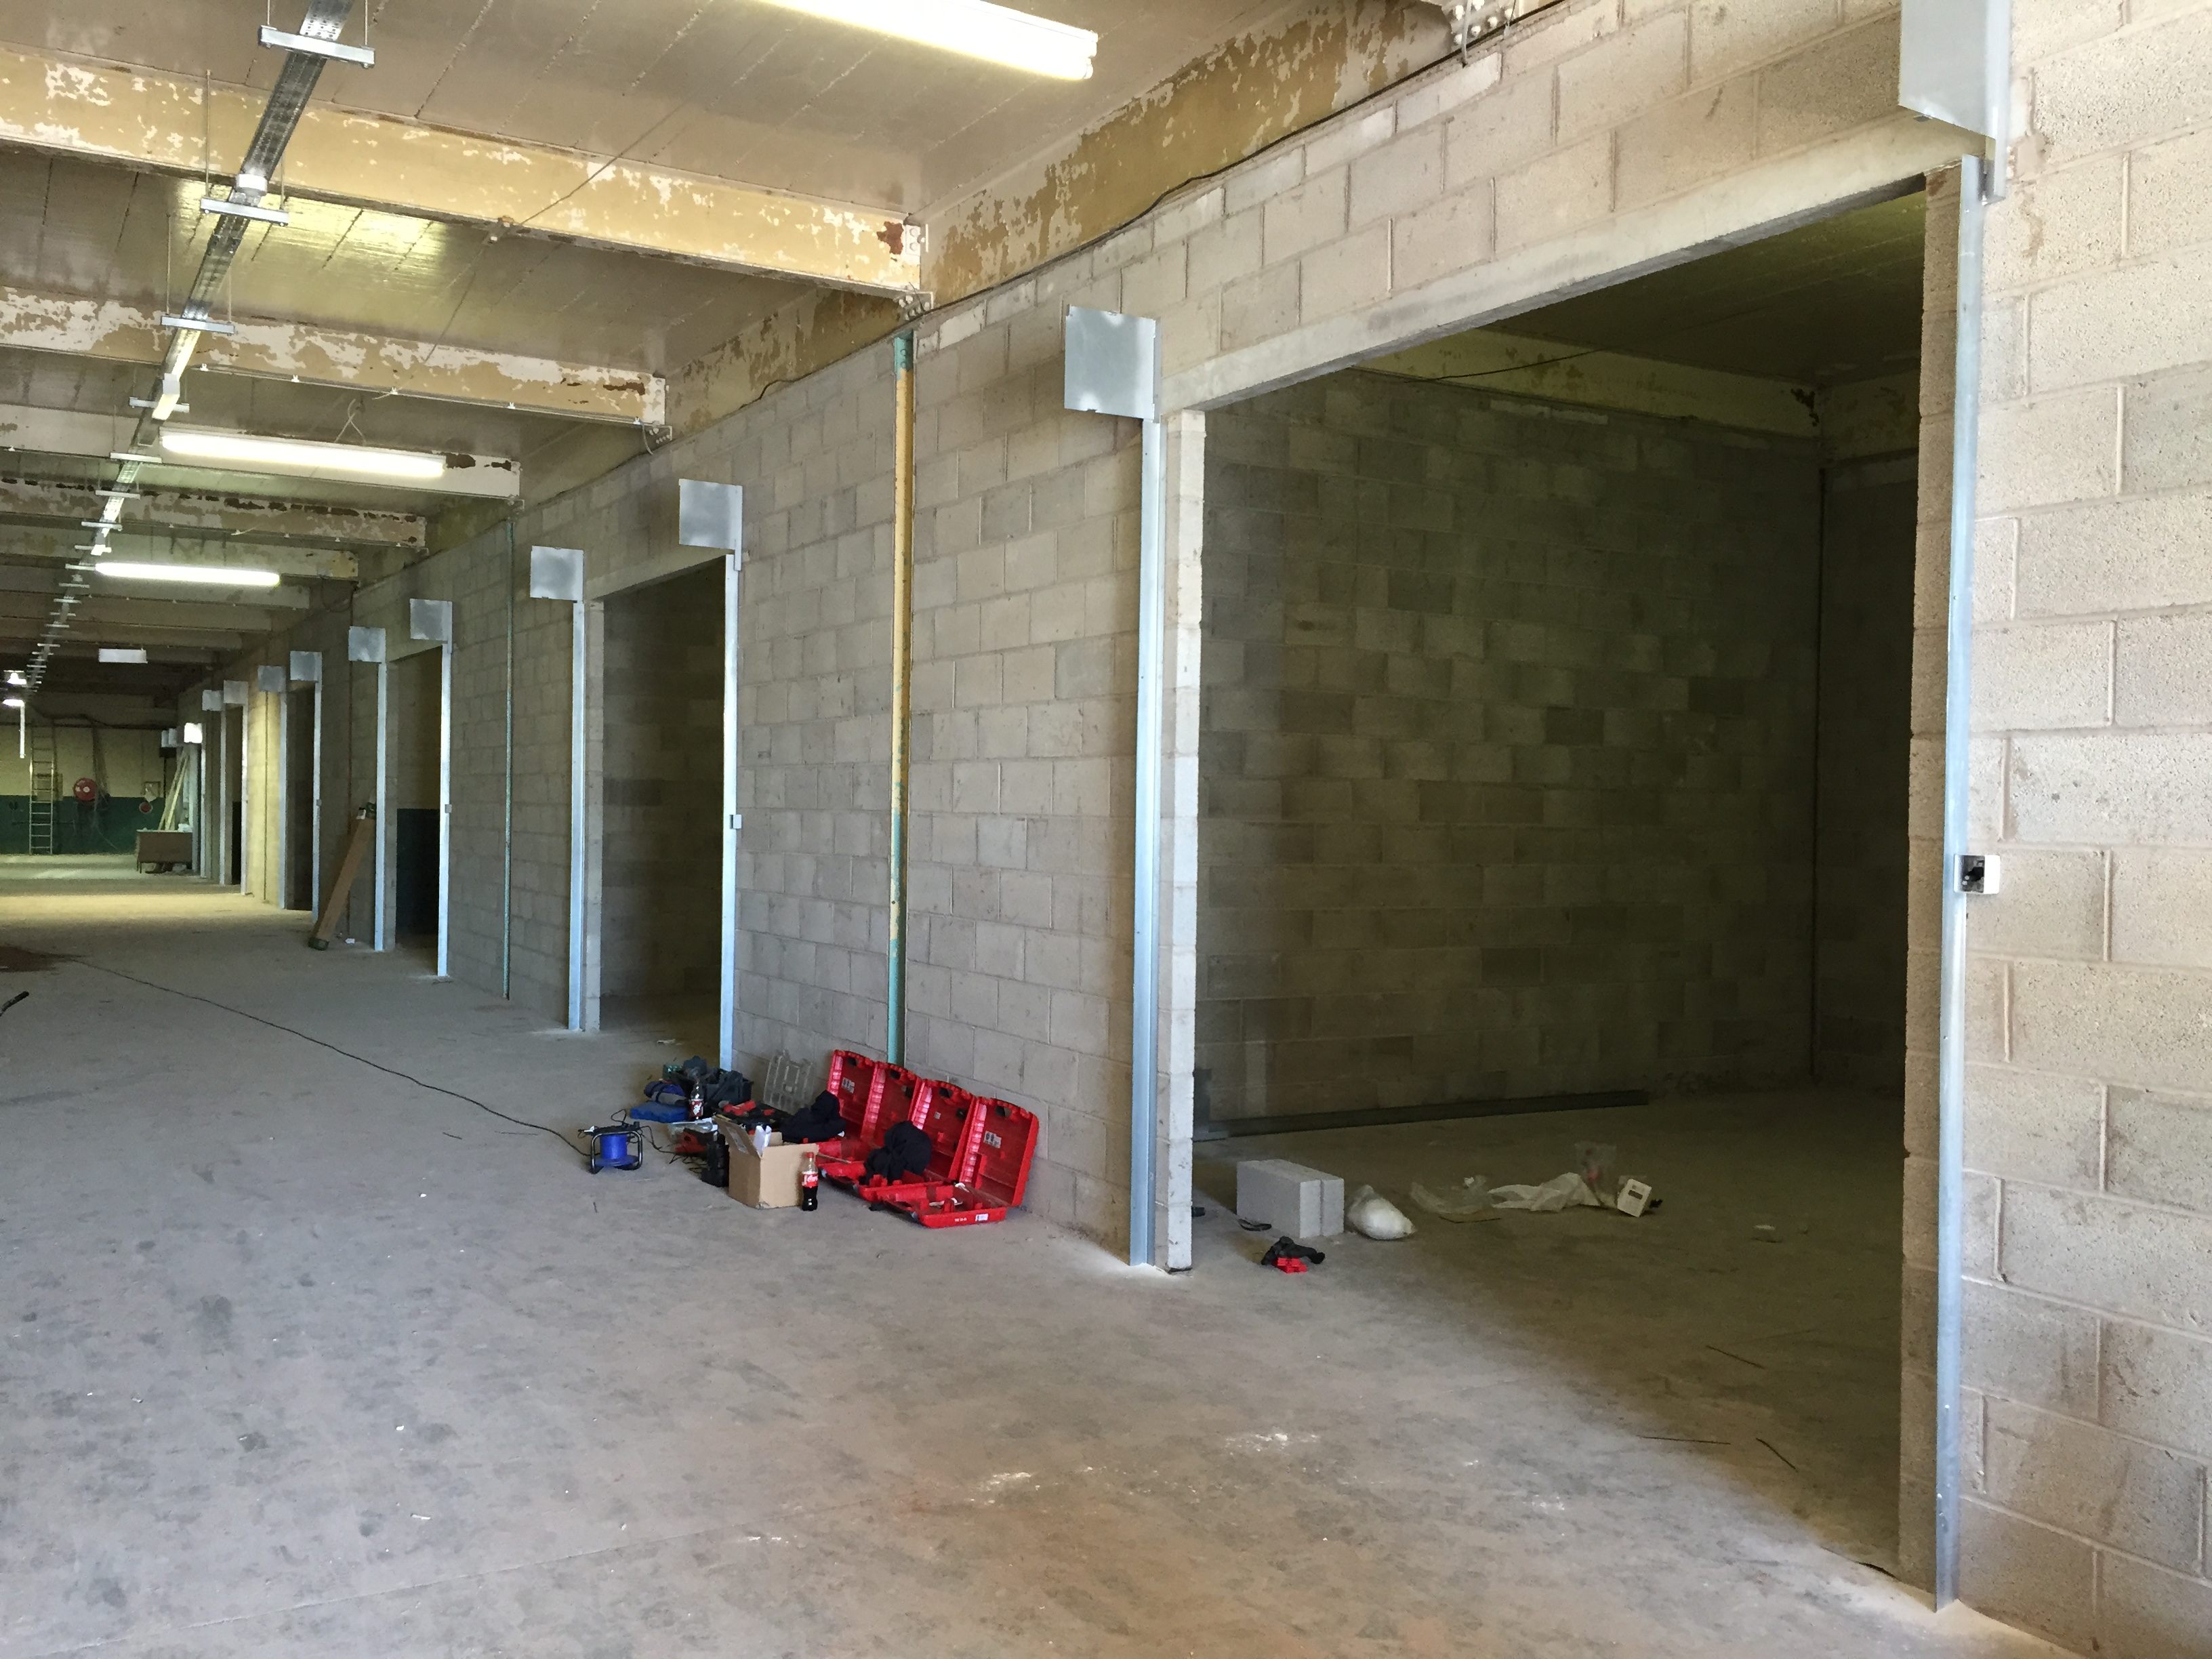 Installation of steel electrically operated roller shutters at a self storage complex in Warrington.